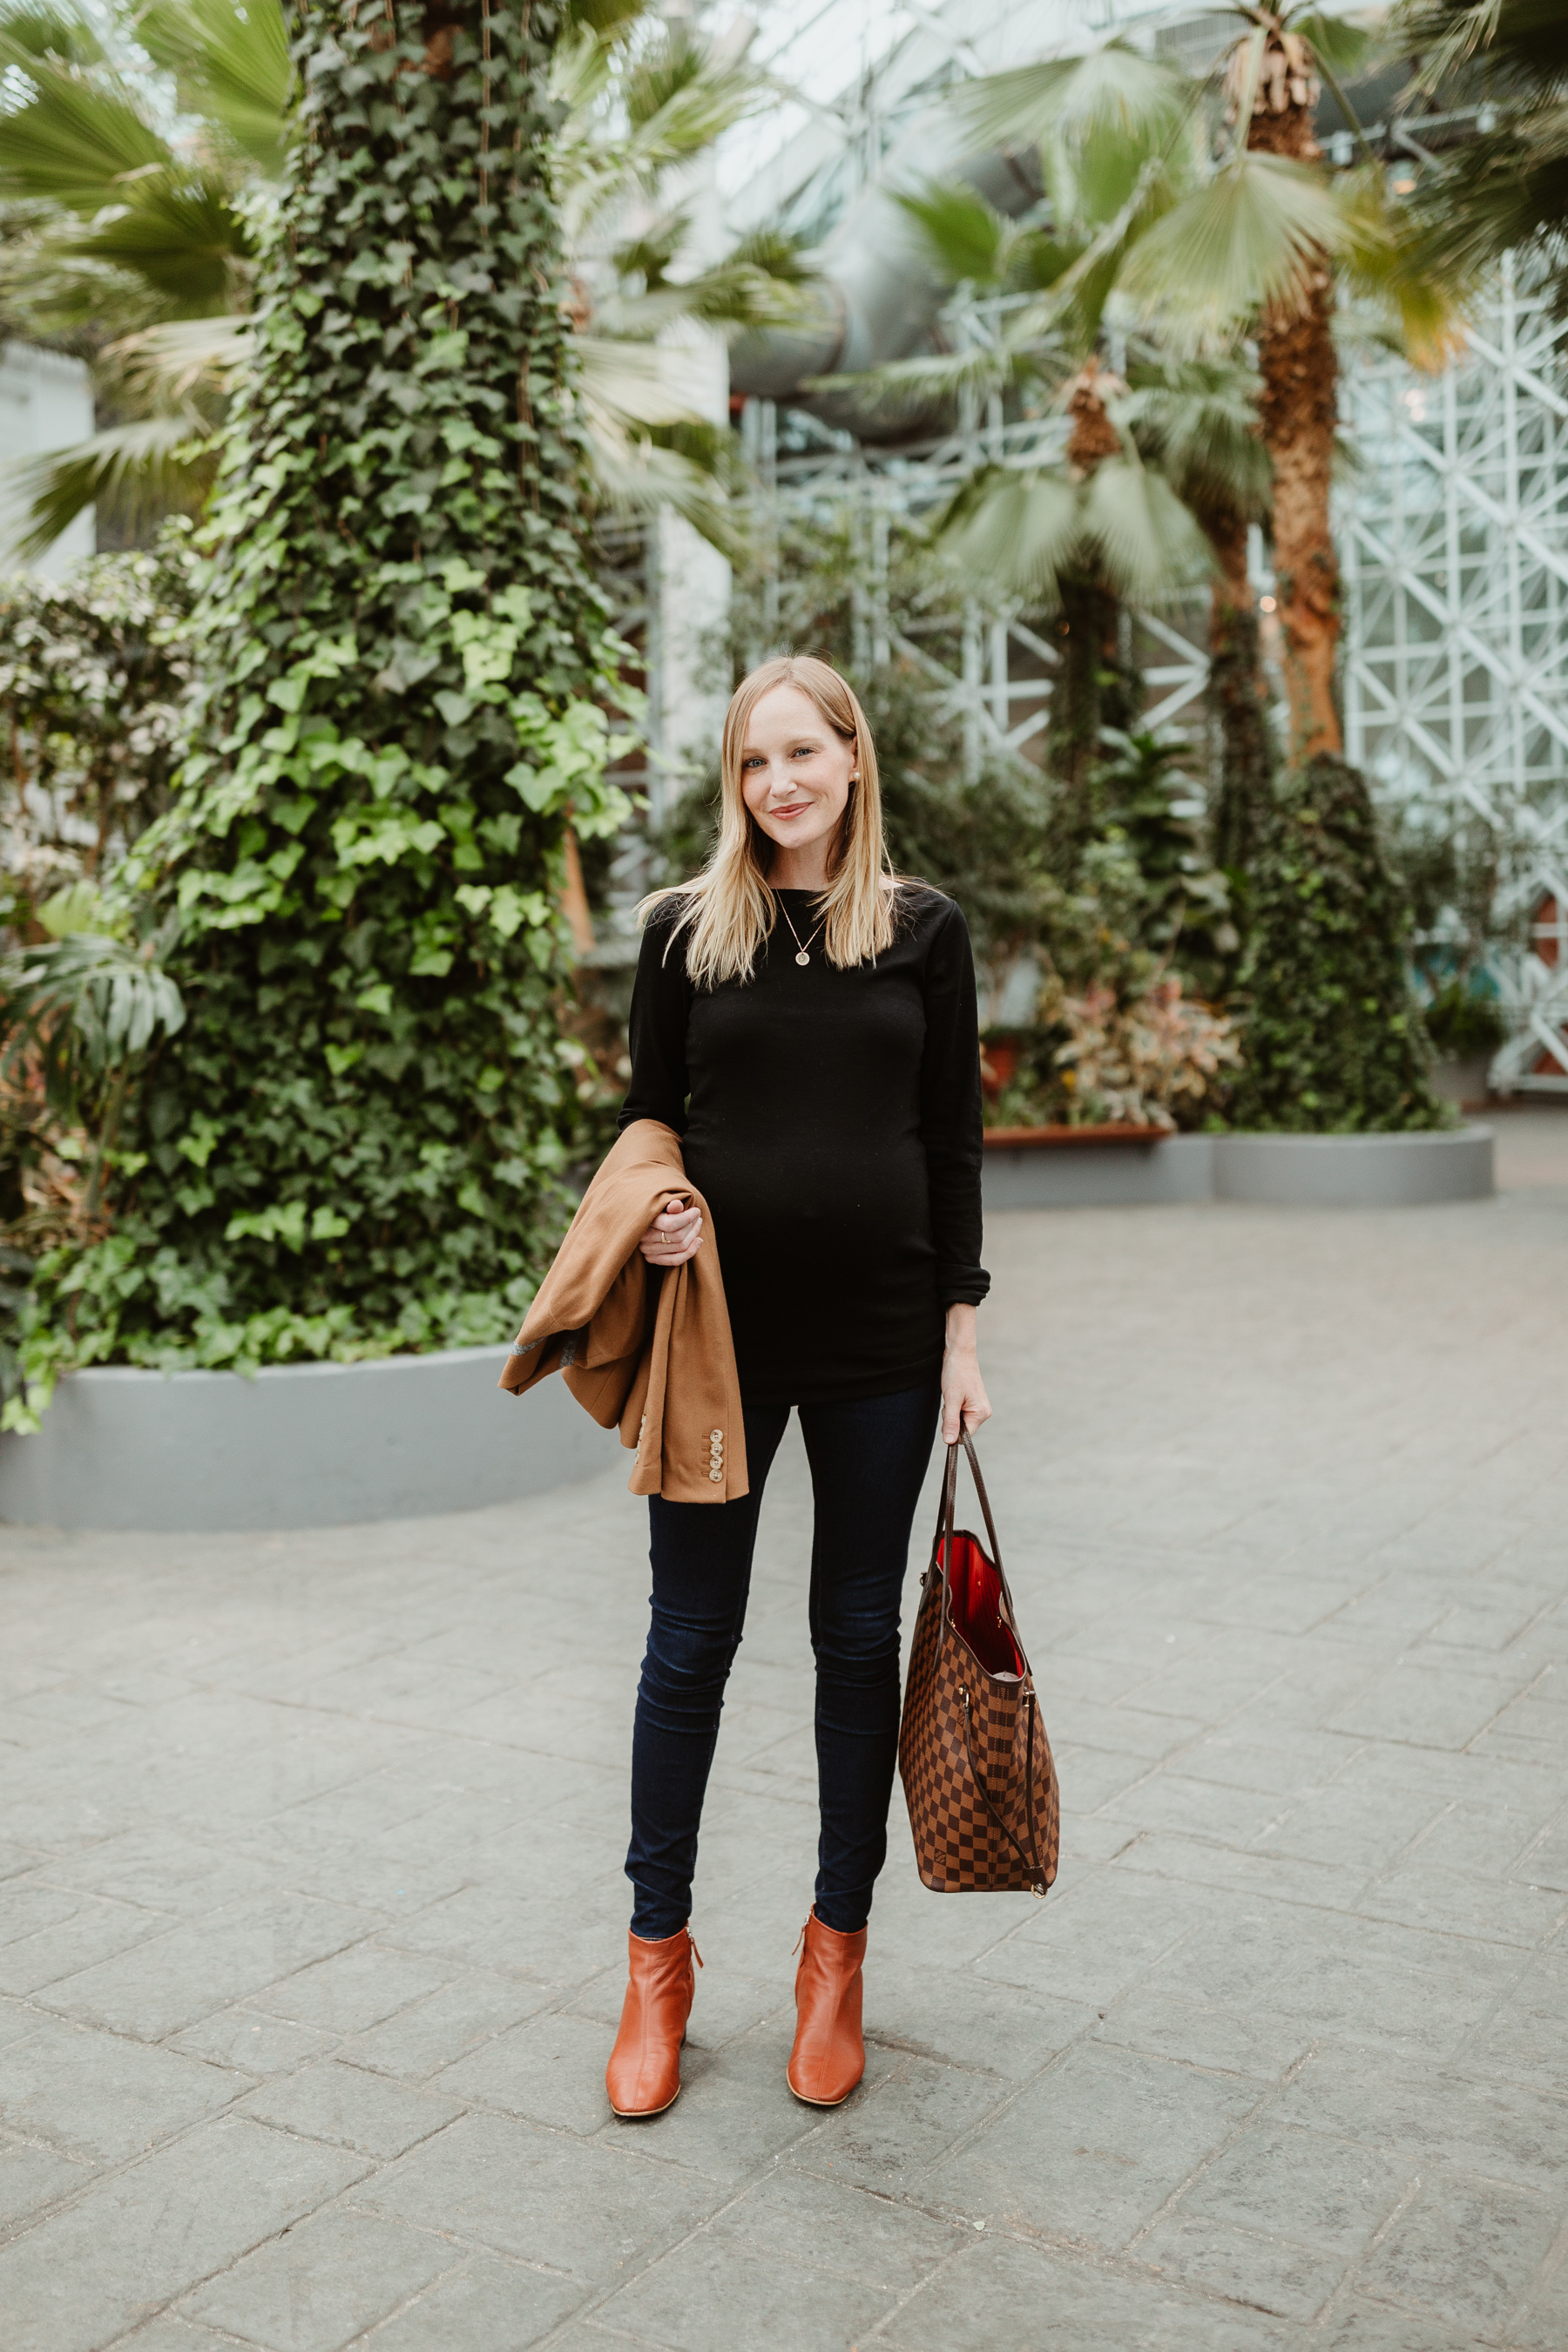 Everlane Day Boot & LV bag and black outfit